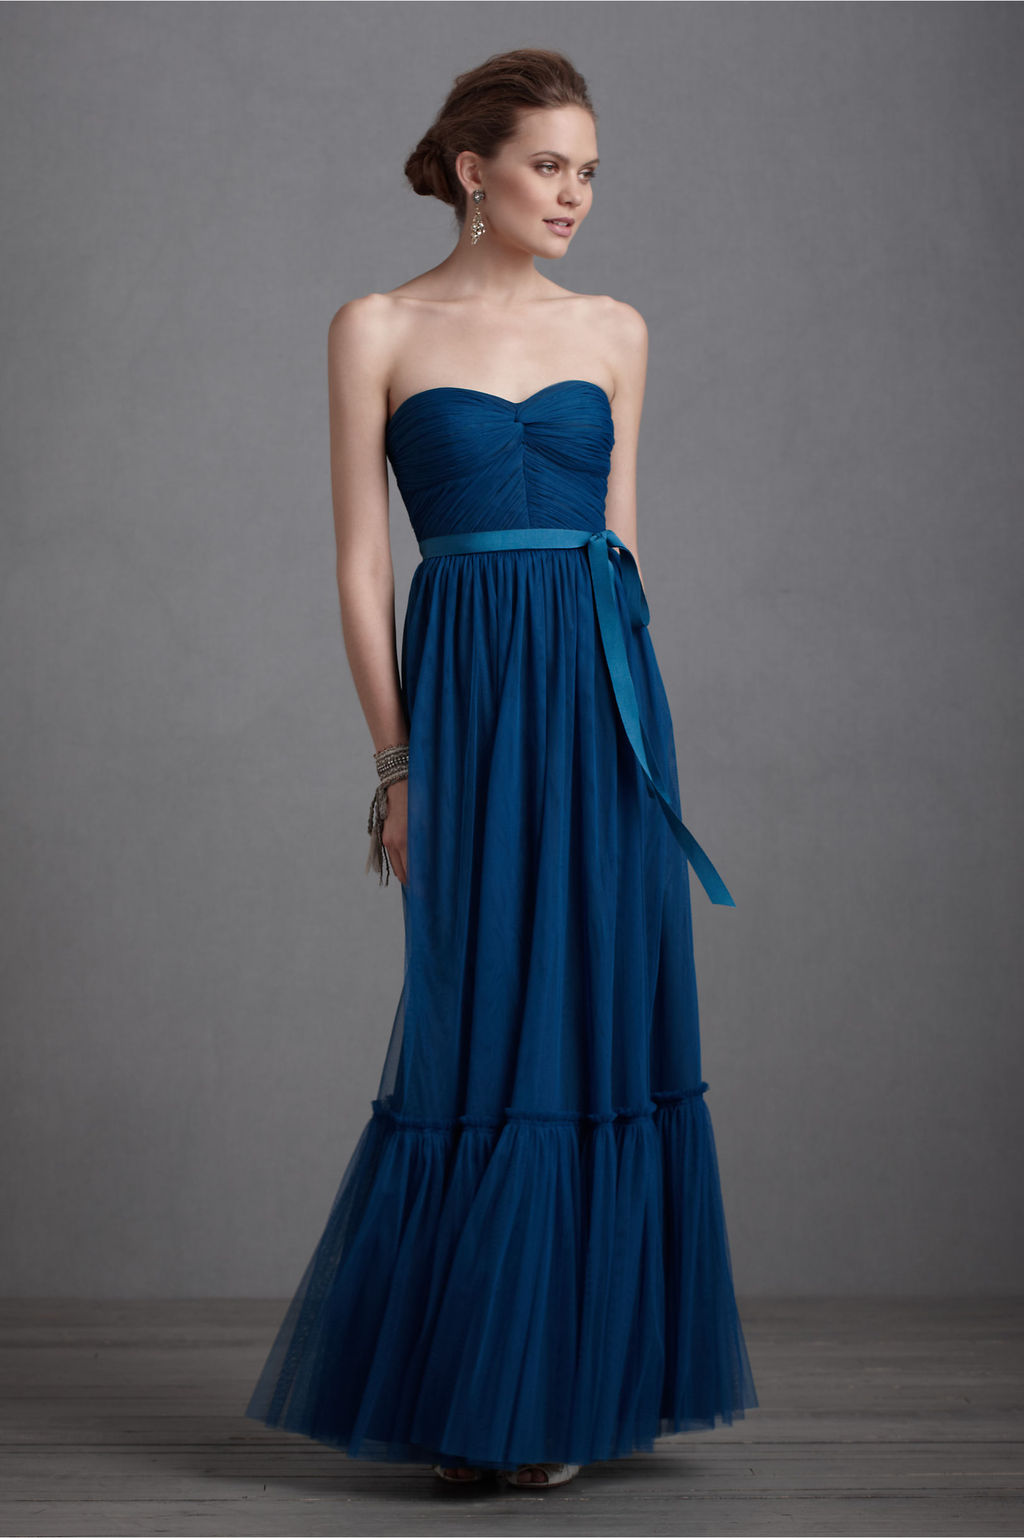 elegant navy blue bridesmaid dress long gown BHLDN ...